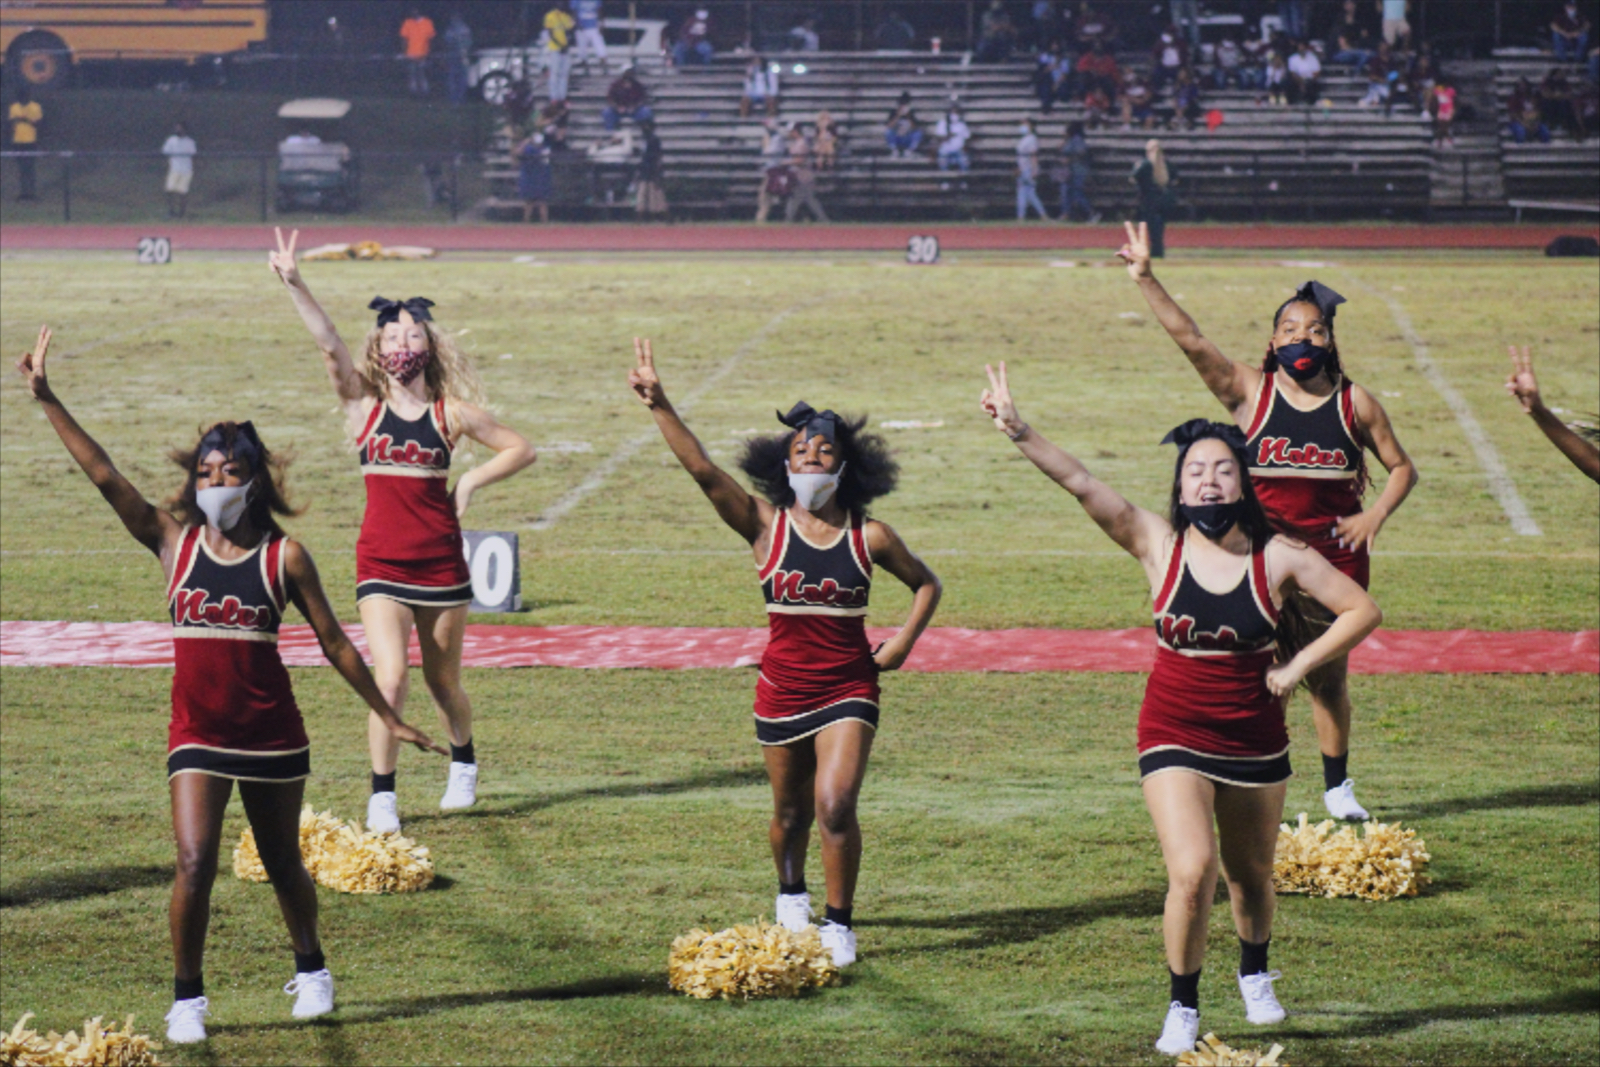 Varsity Cheerleading FHS vs. Madison County 9-25-2020